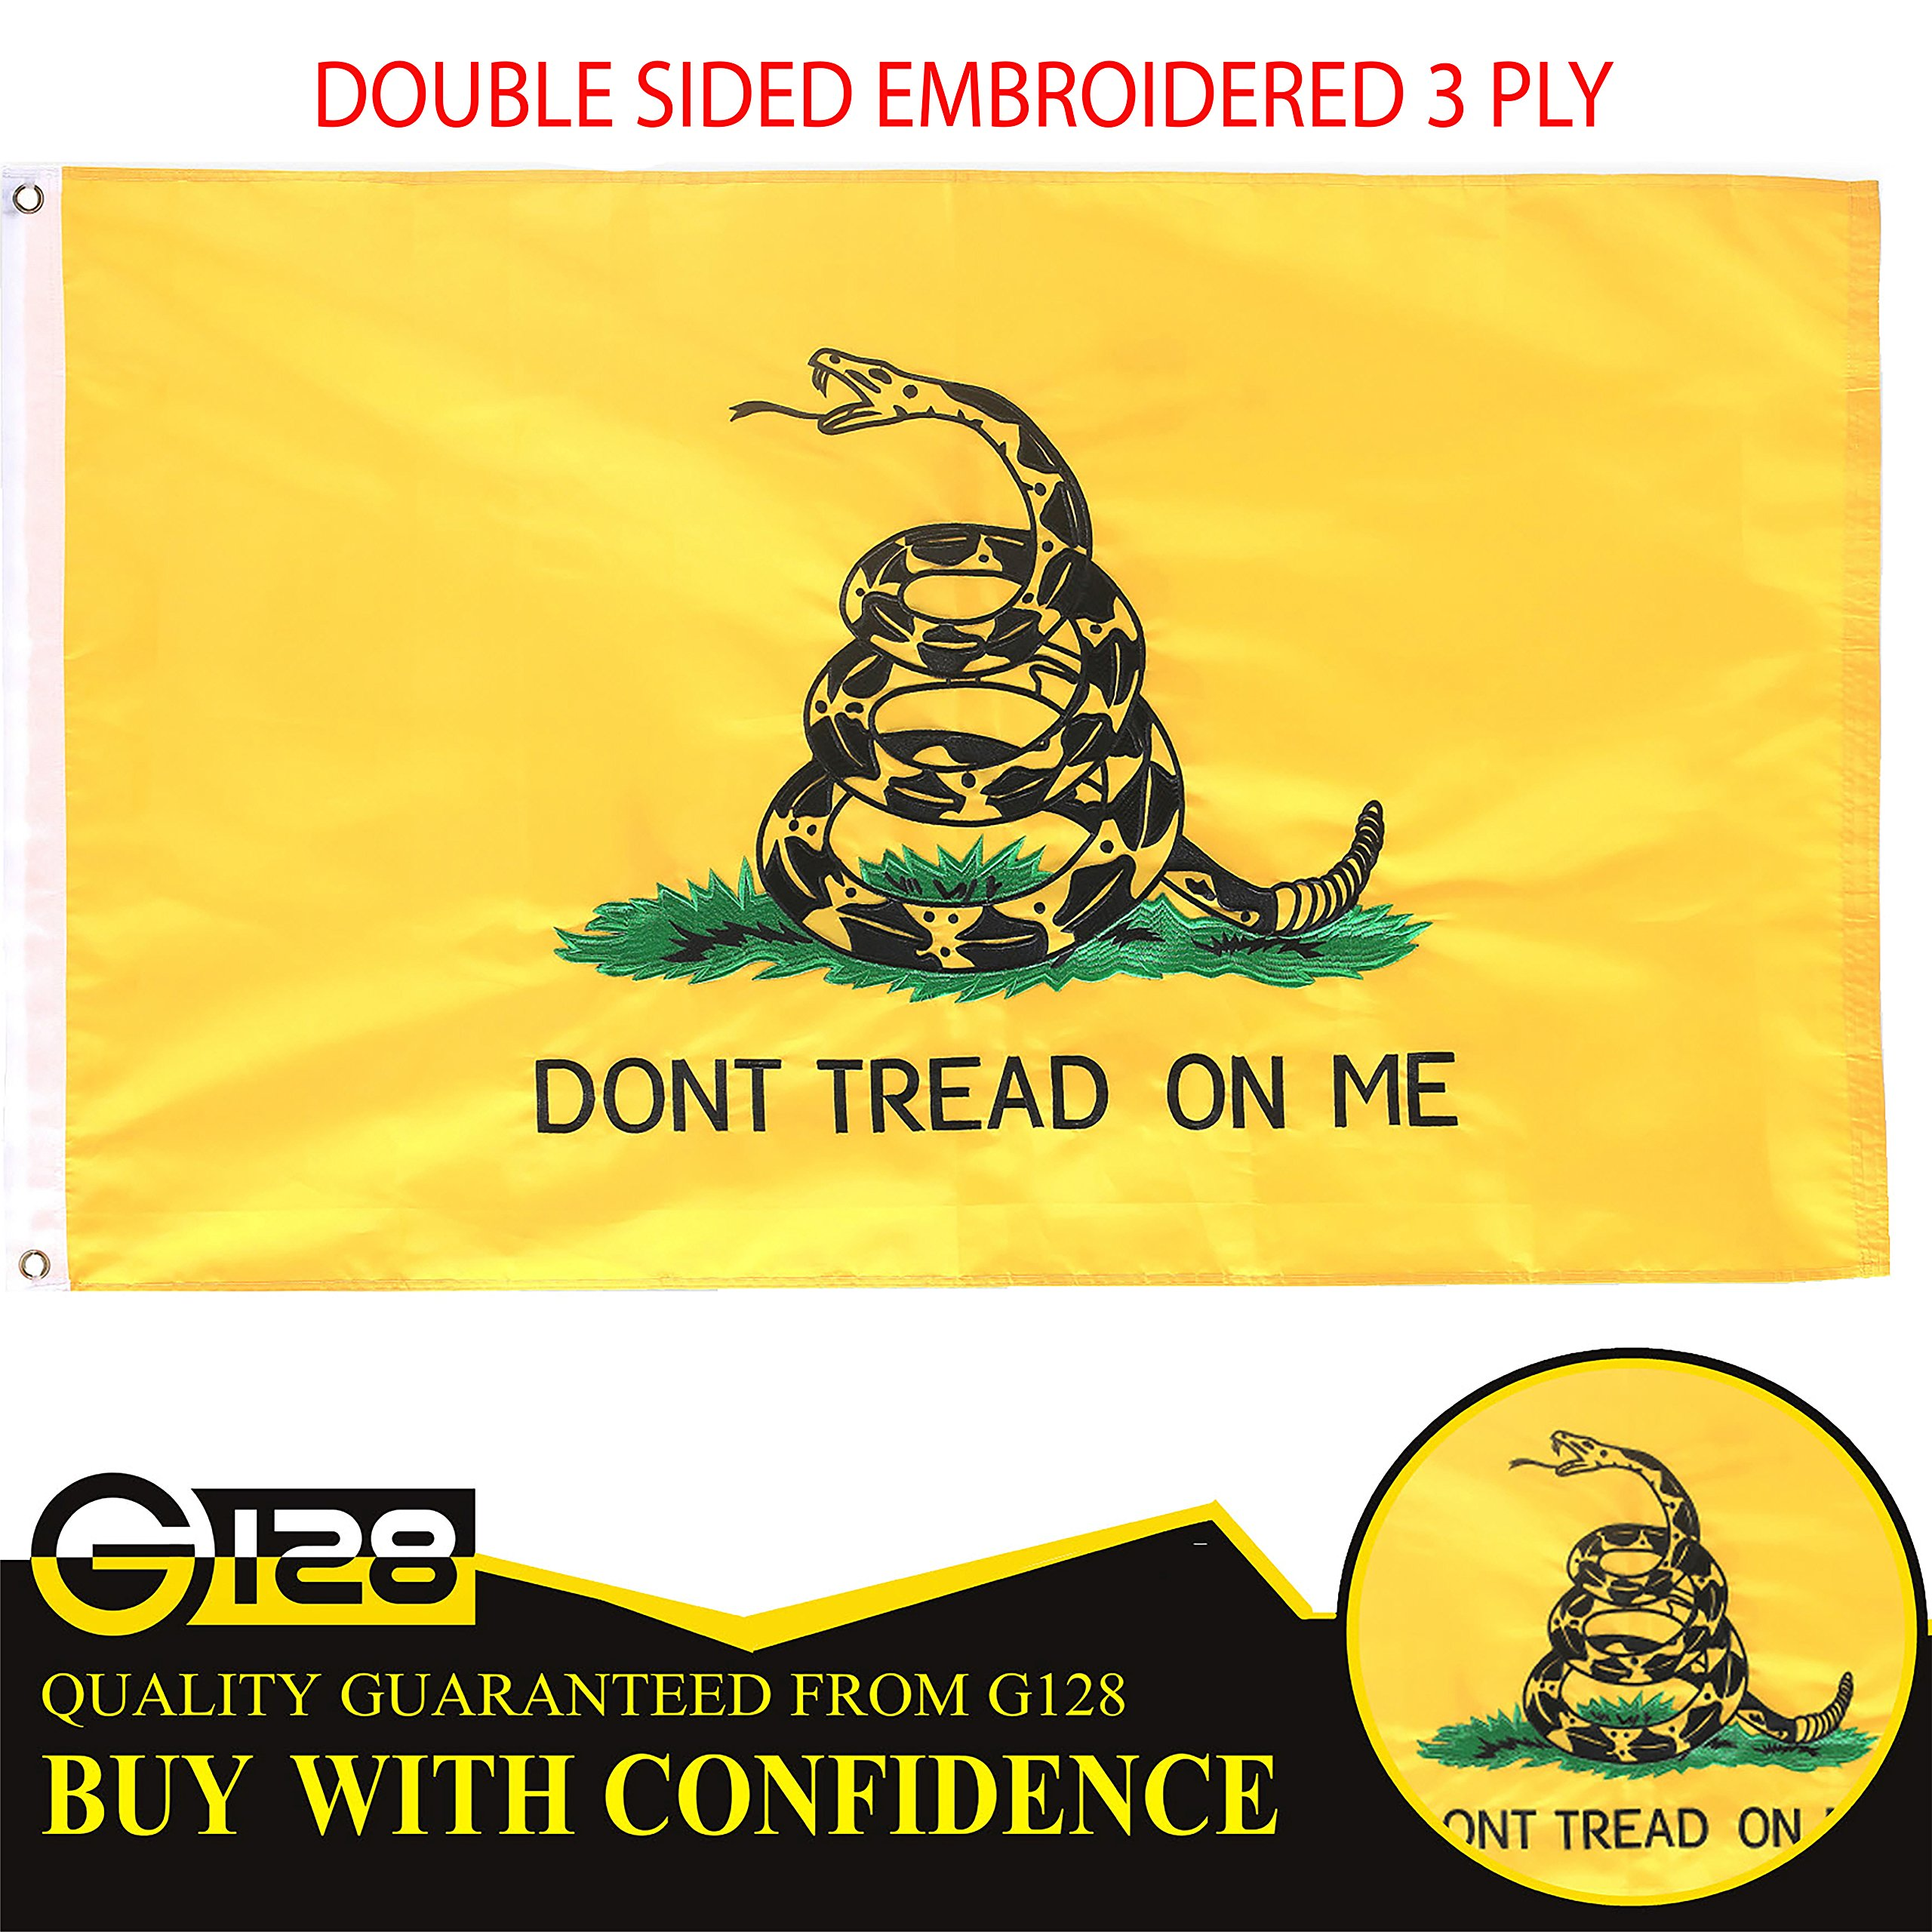 G128 – Dont Tread on Me (Gadsden) Flag | 3x5 feet | Double Sided Embroidered 210D – Indoor/Outdoor, Vibrant Colors, Brass Grommets, Heavy Duty Polyester, 3-ply